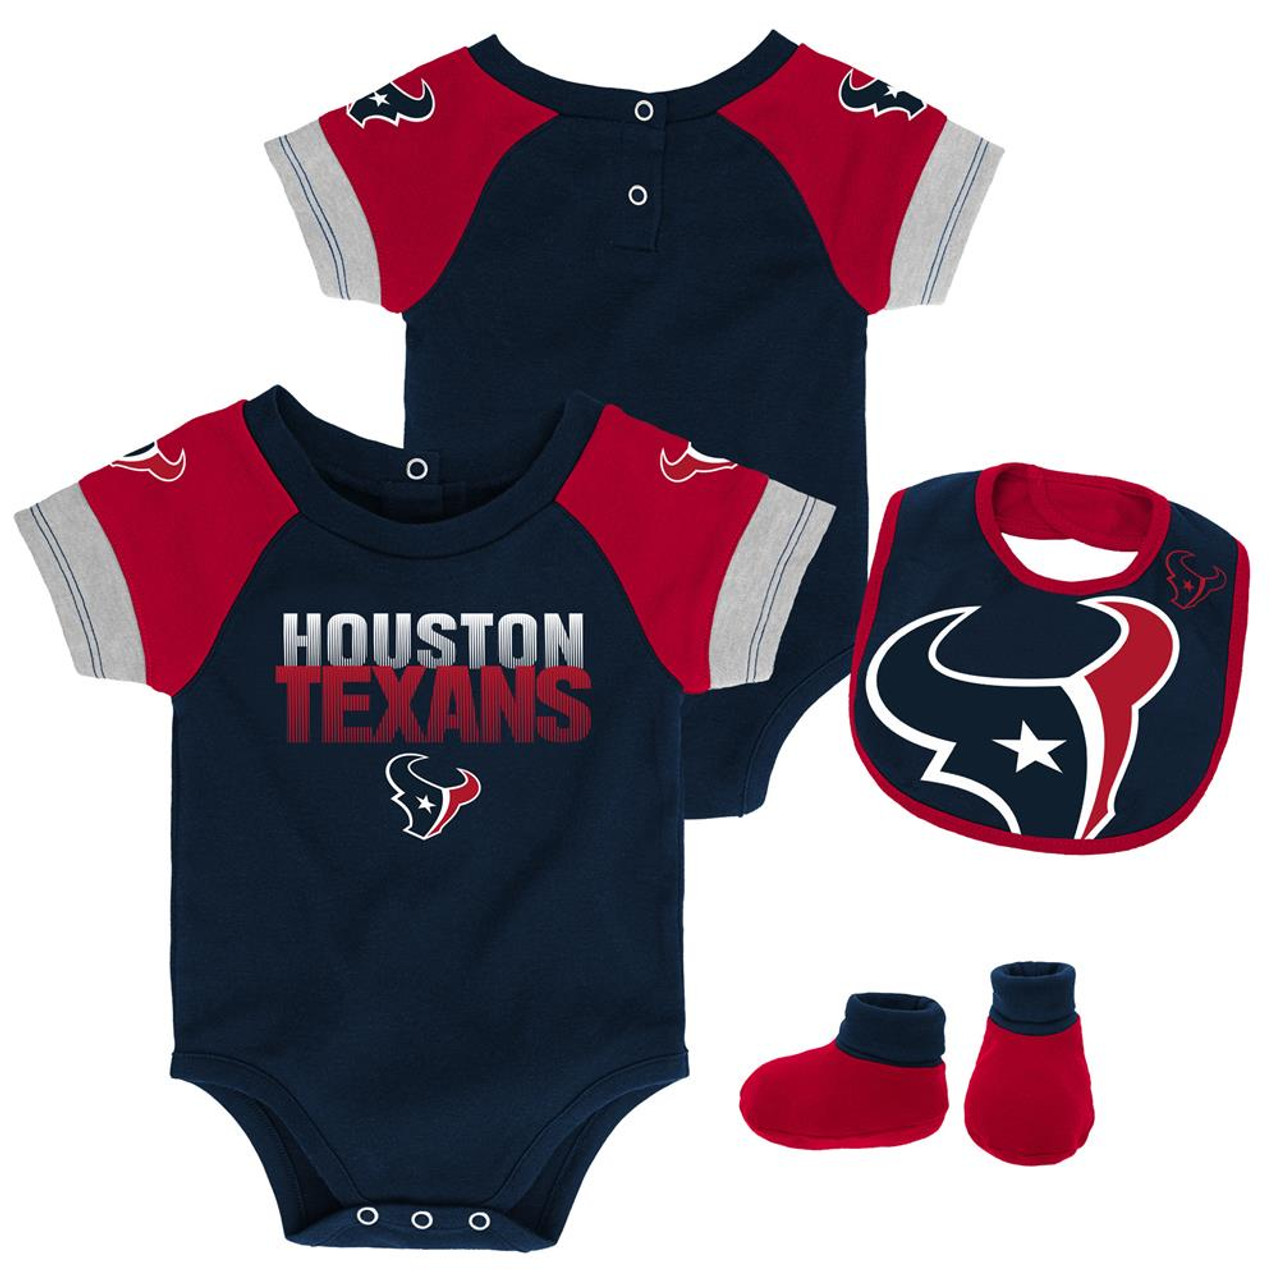 Infant Houston Texans Creeper Set Baby Snapsuit Set